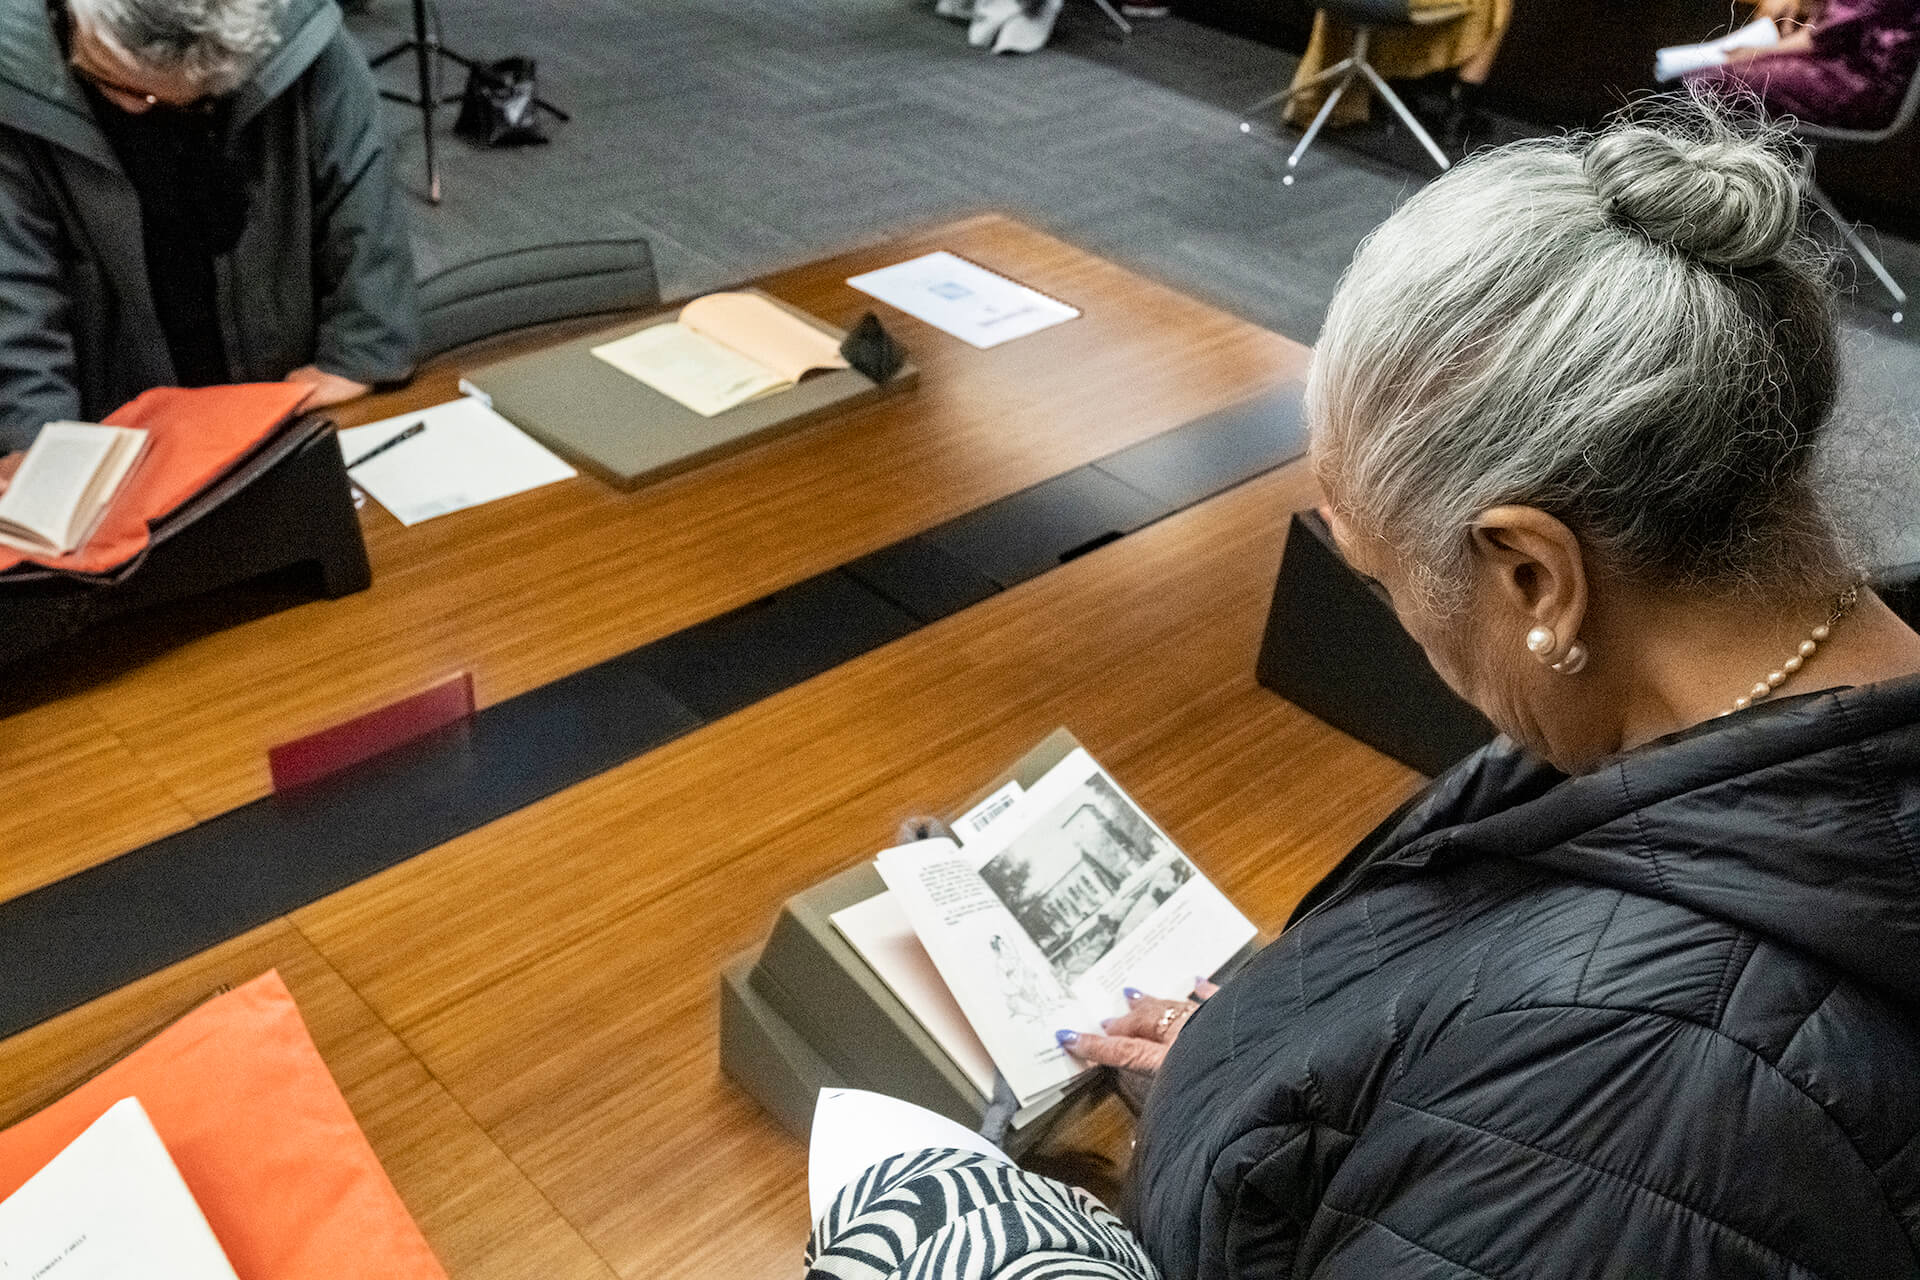 Grey haired woman looking at book on a table